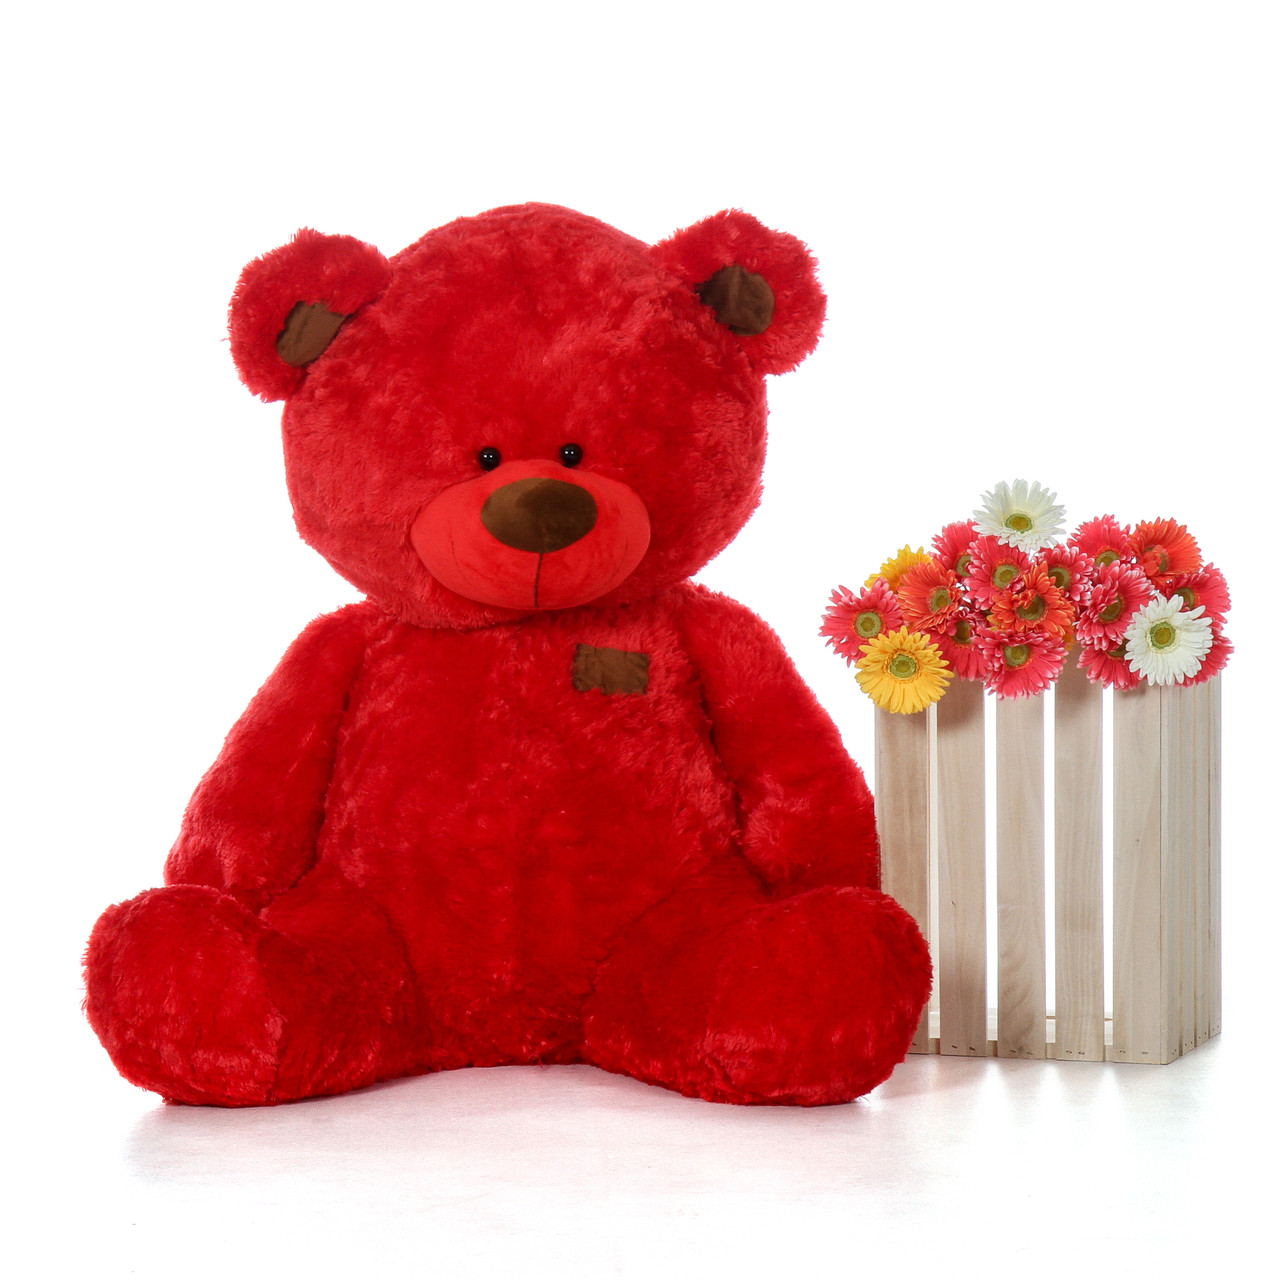 Randy Shags Chubby and Adorable Bright Red Teddy Bear 45in